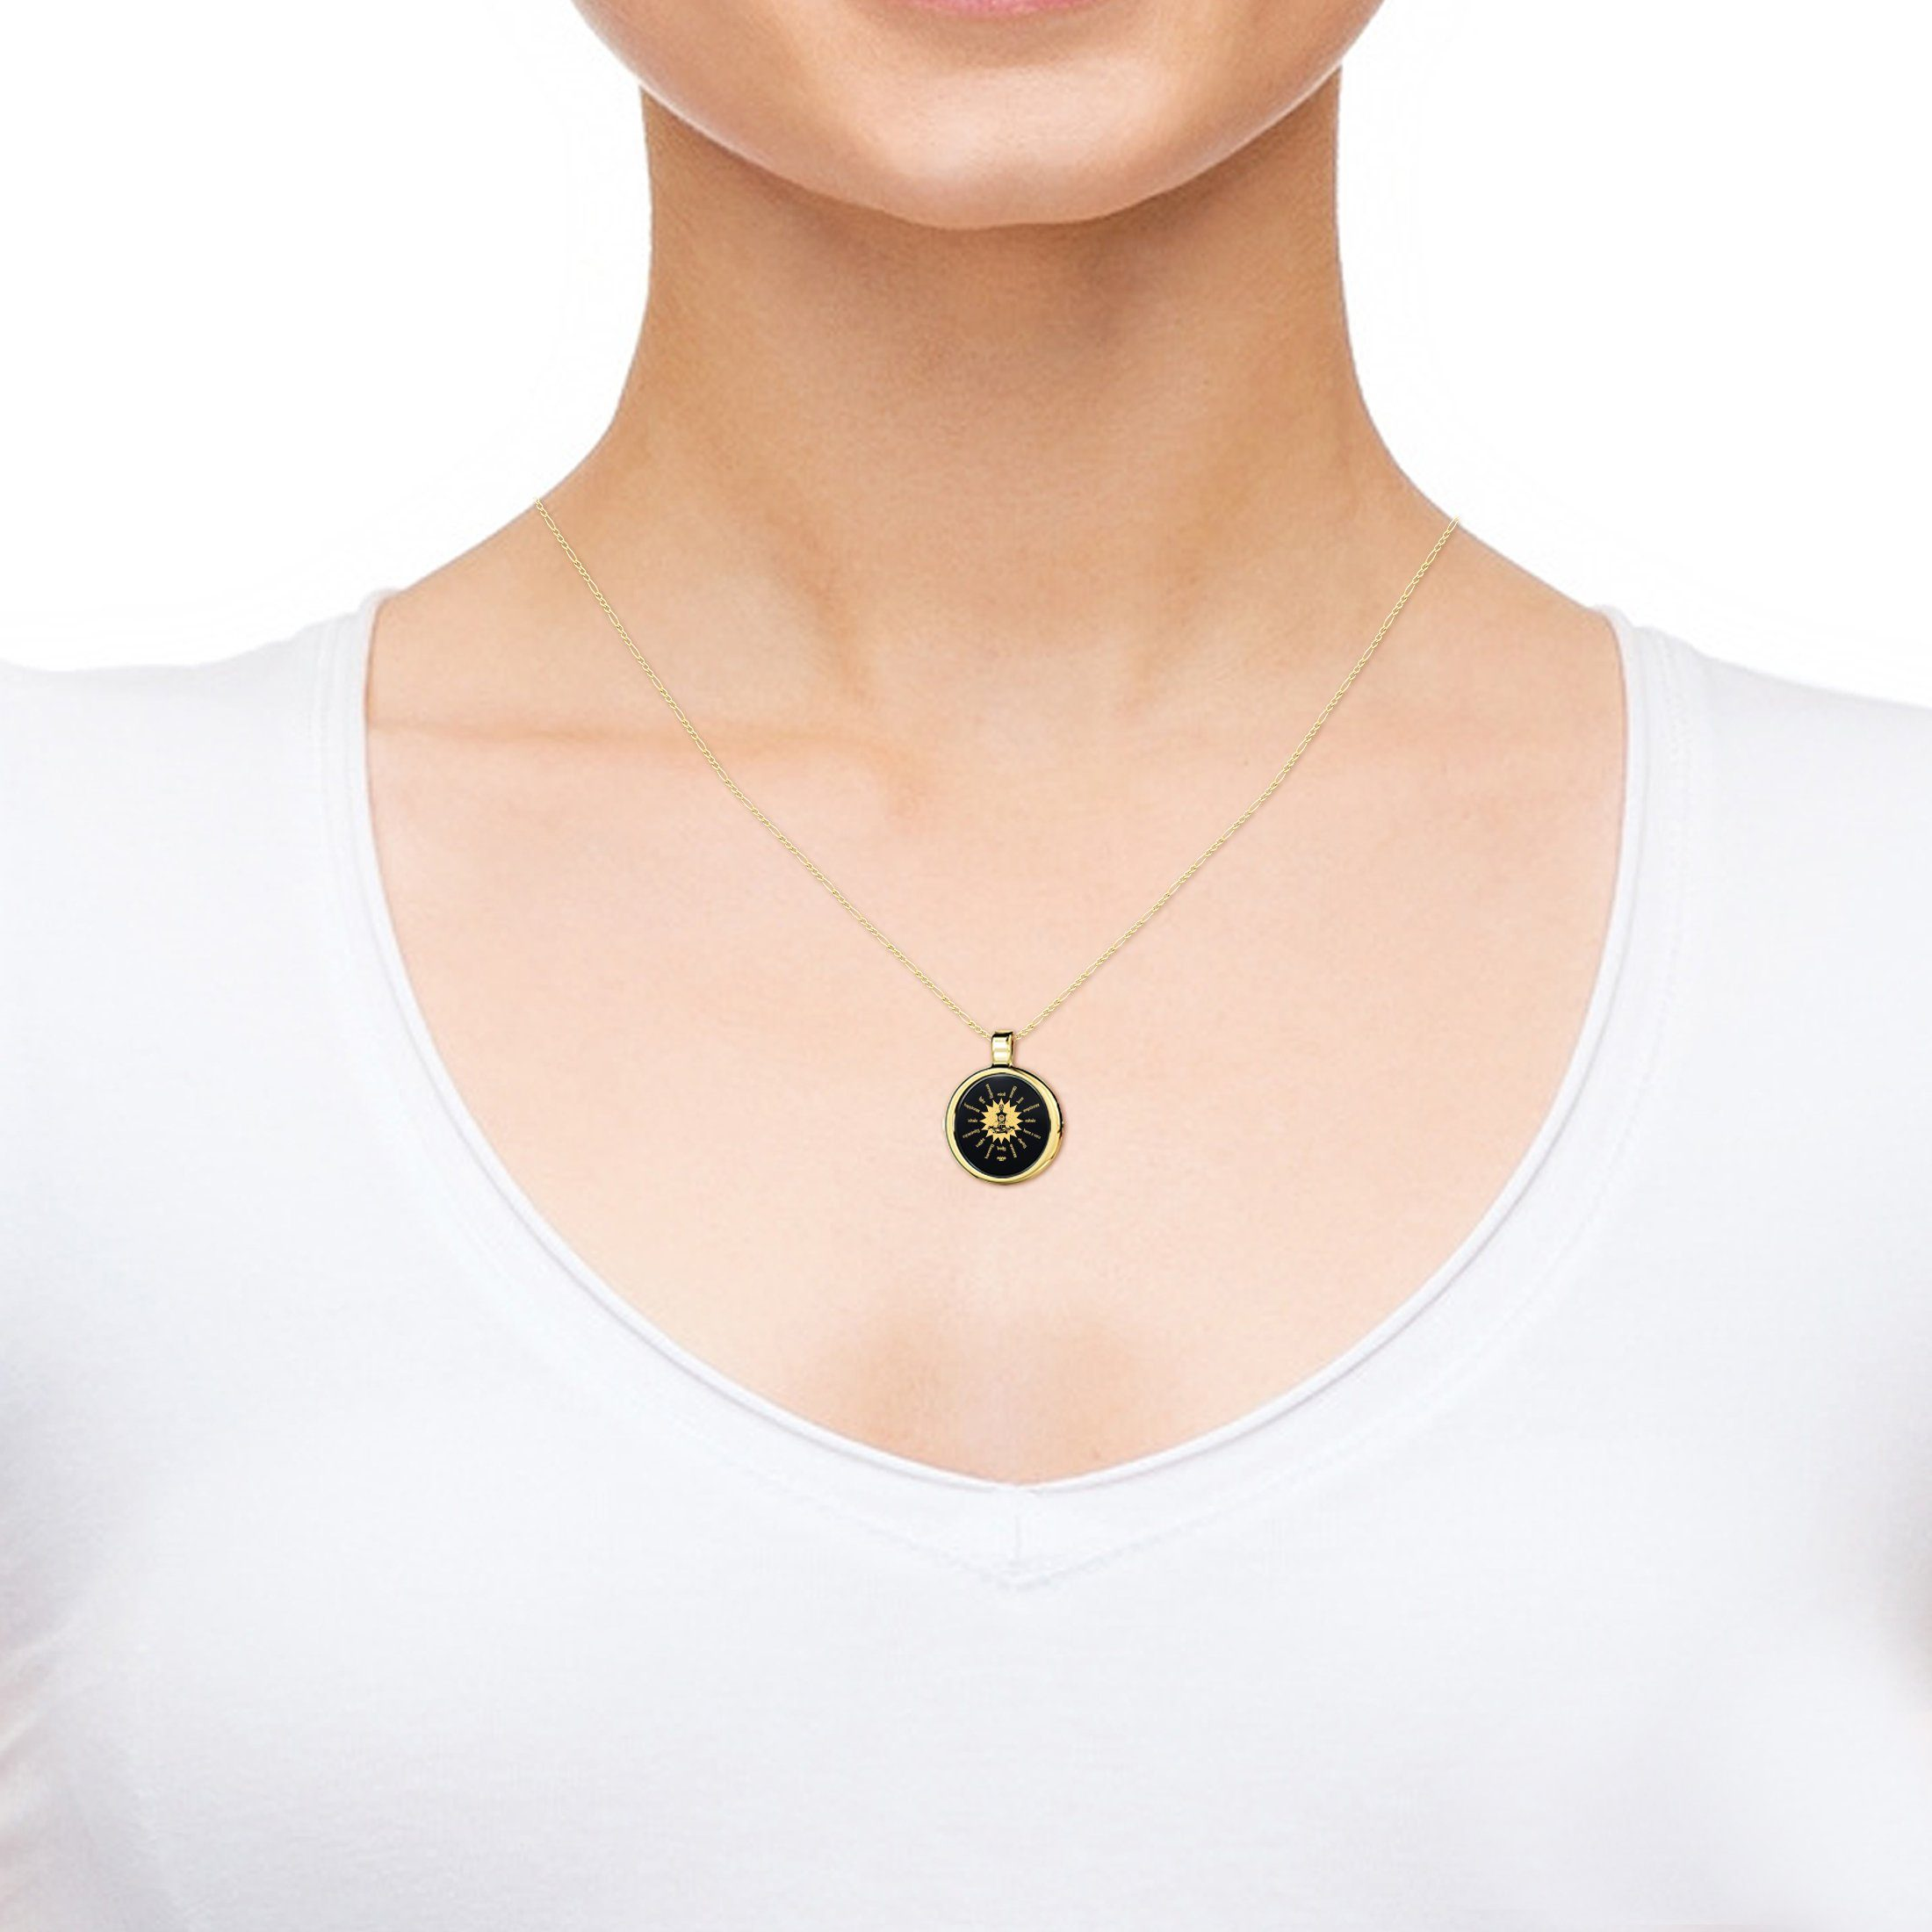 Gold Buddha Necklace for Her, Nano Jewelry